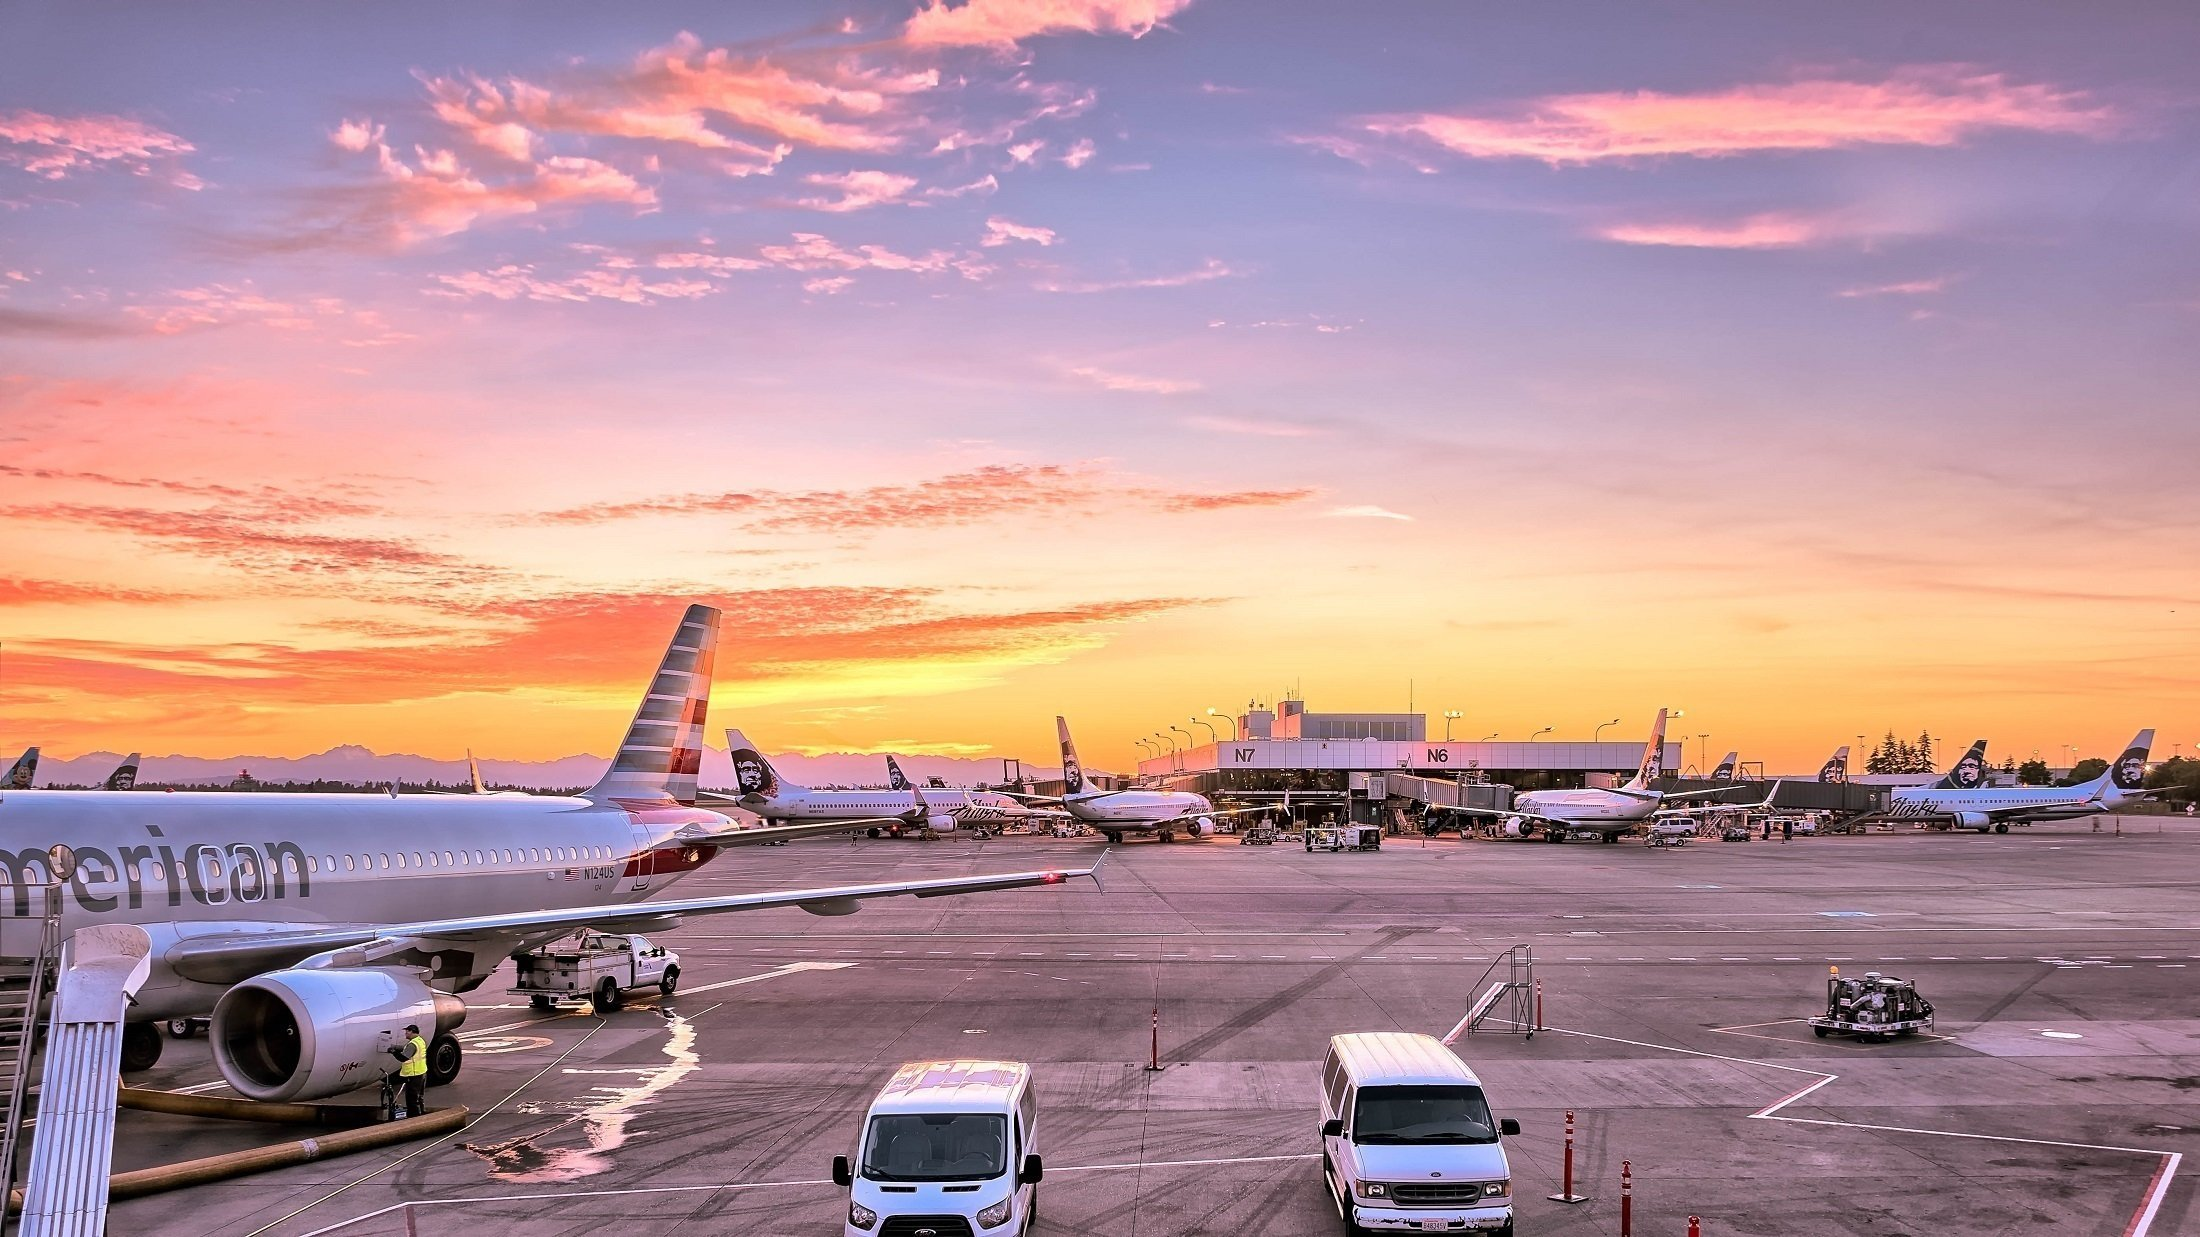 View of airplane getting inspected at the airport